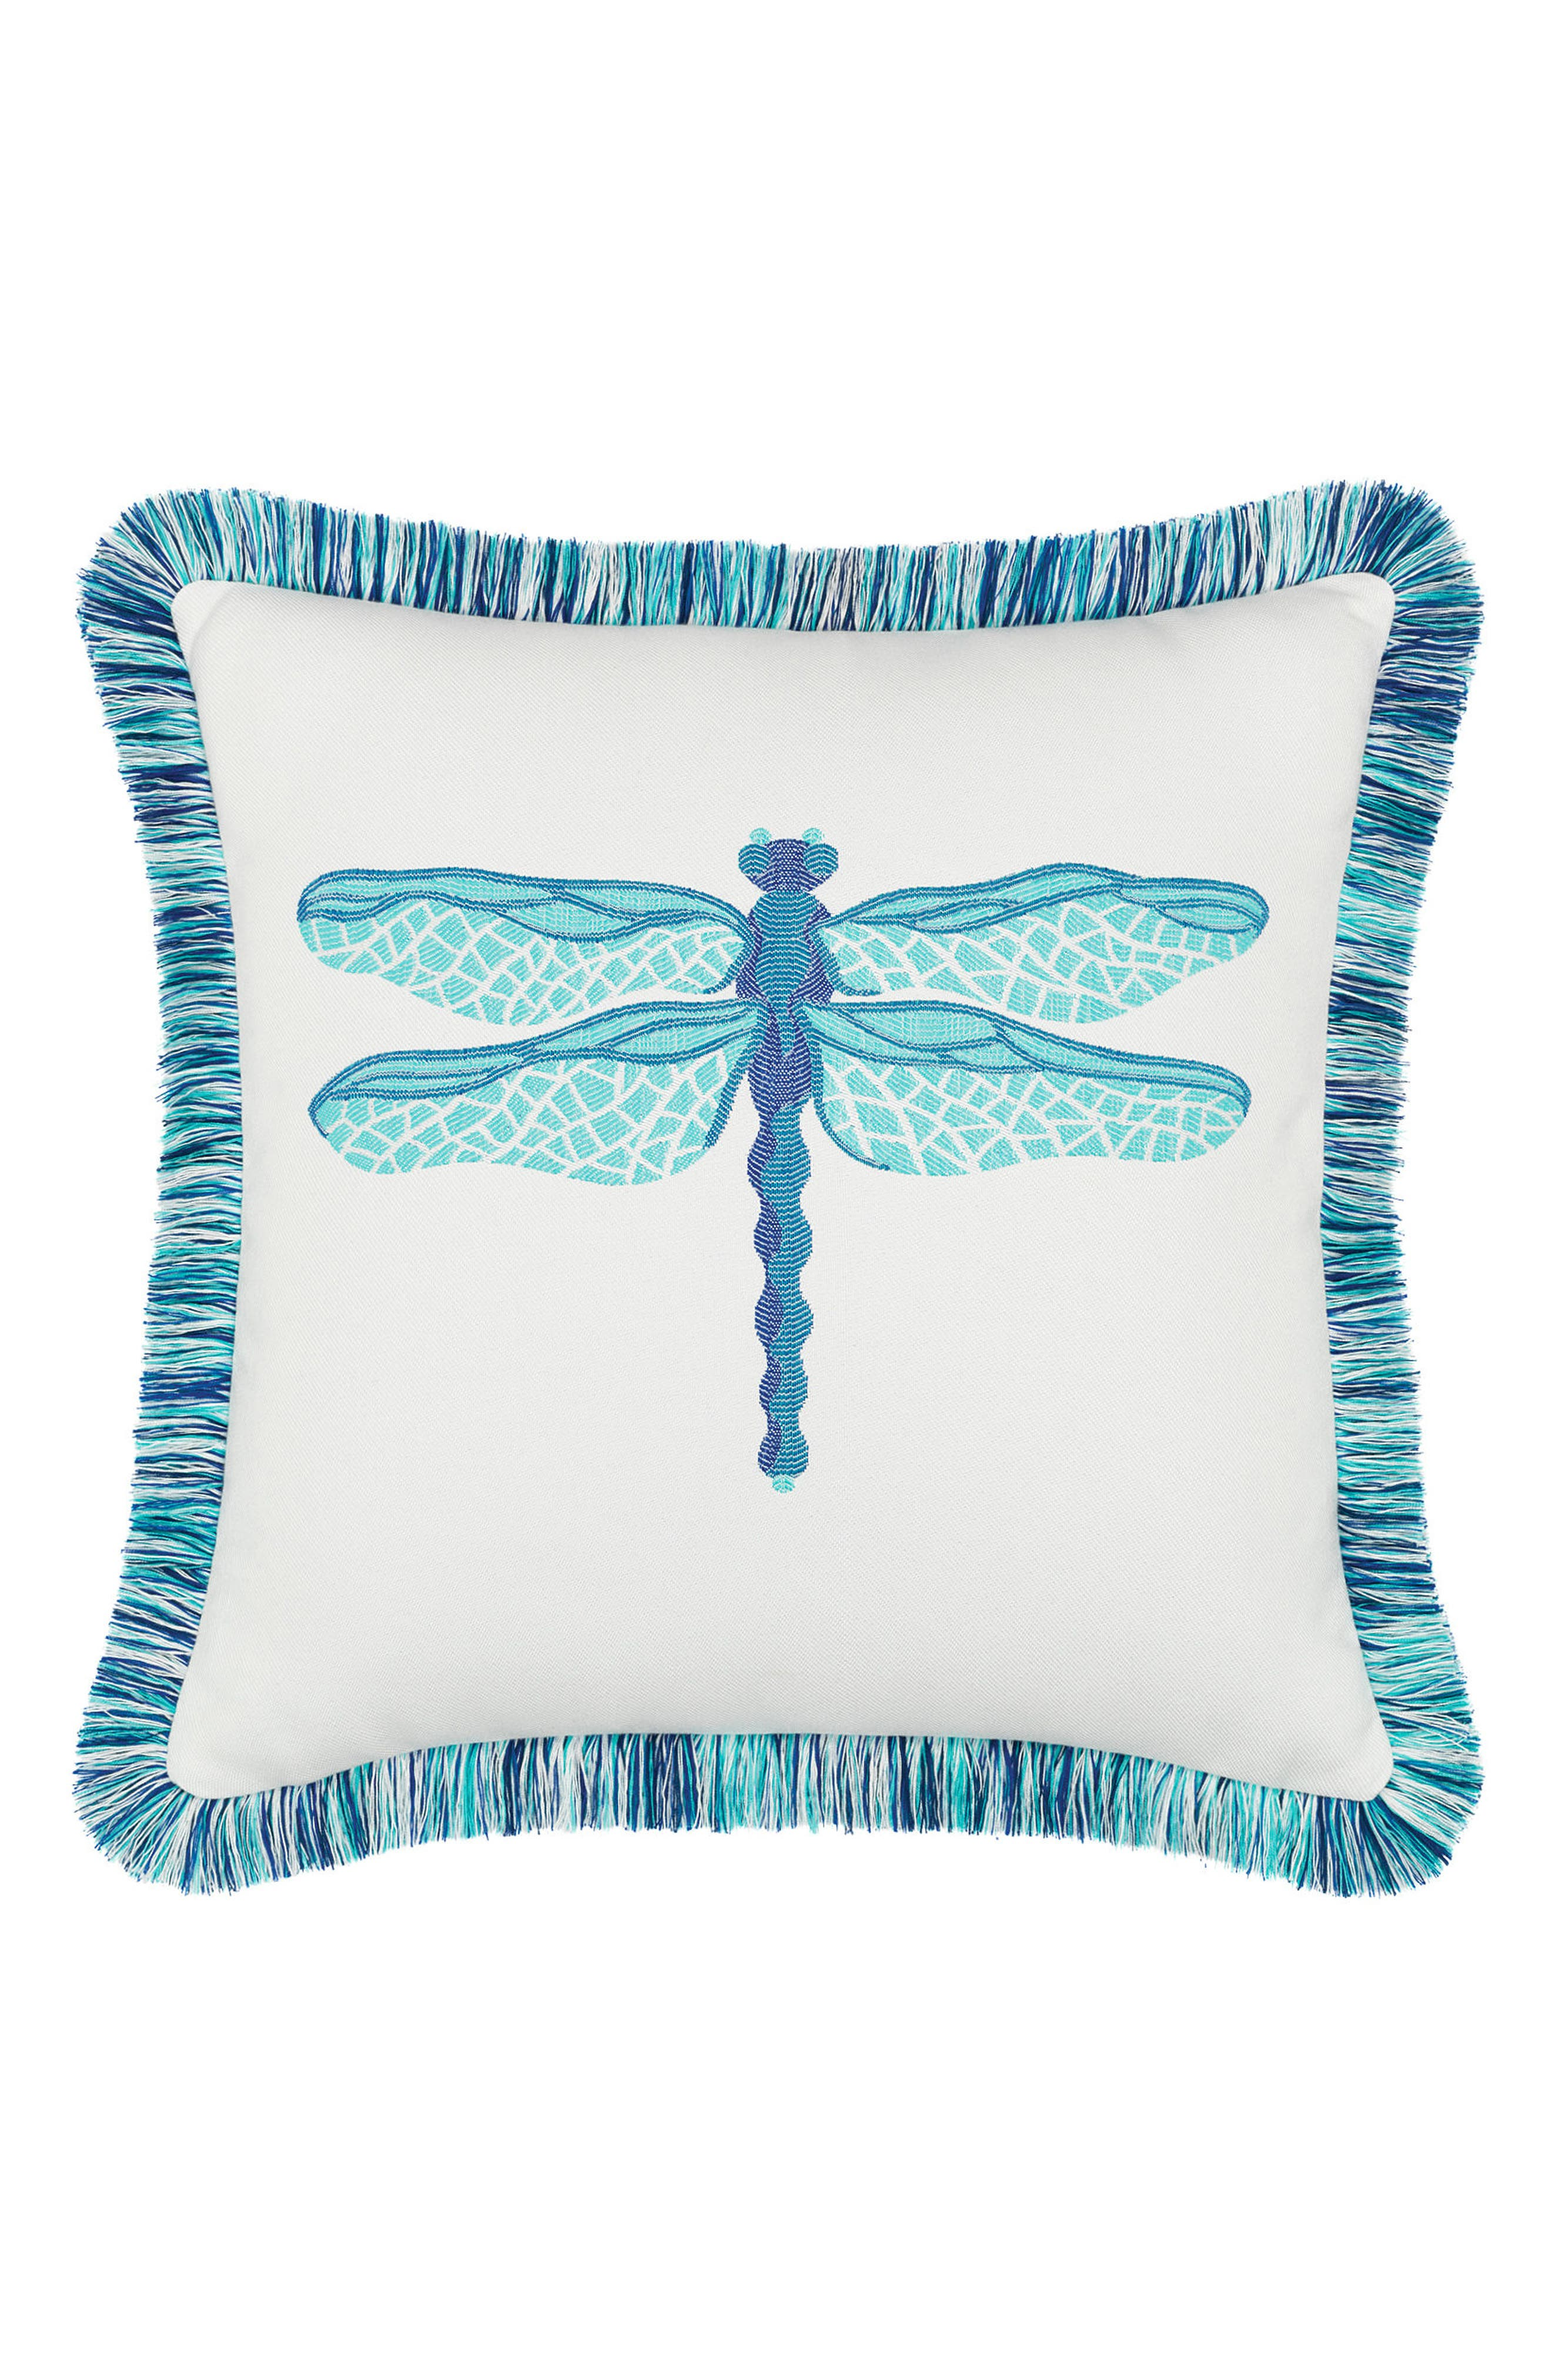 Elaine Smith Dragonfly Indoor/Outdoor Accent Pillow